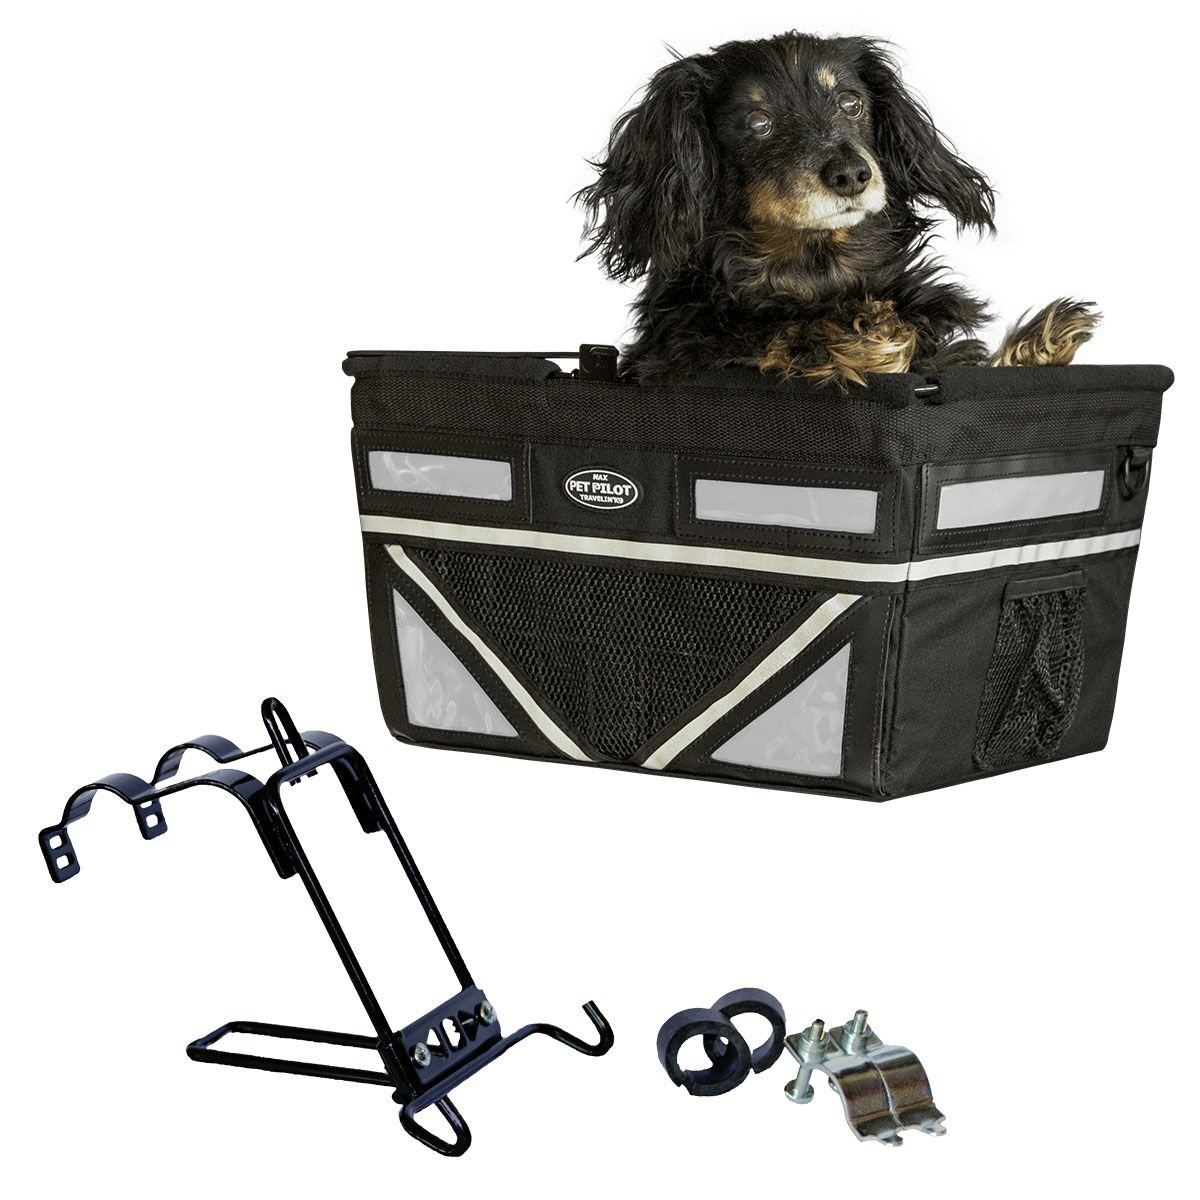 Pet-Pilot MAX dog bicycle basket carrier | 2019 Model with 9 Color Options for your bike (SILVER) by Travelin K9